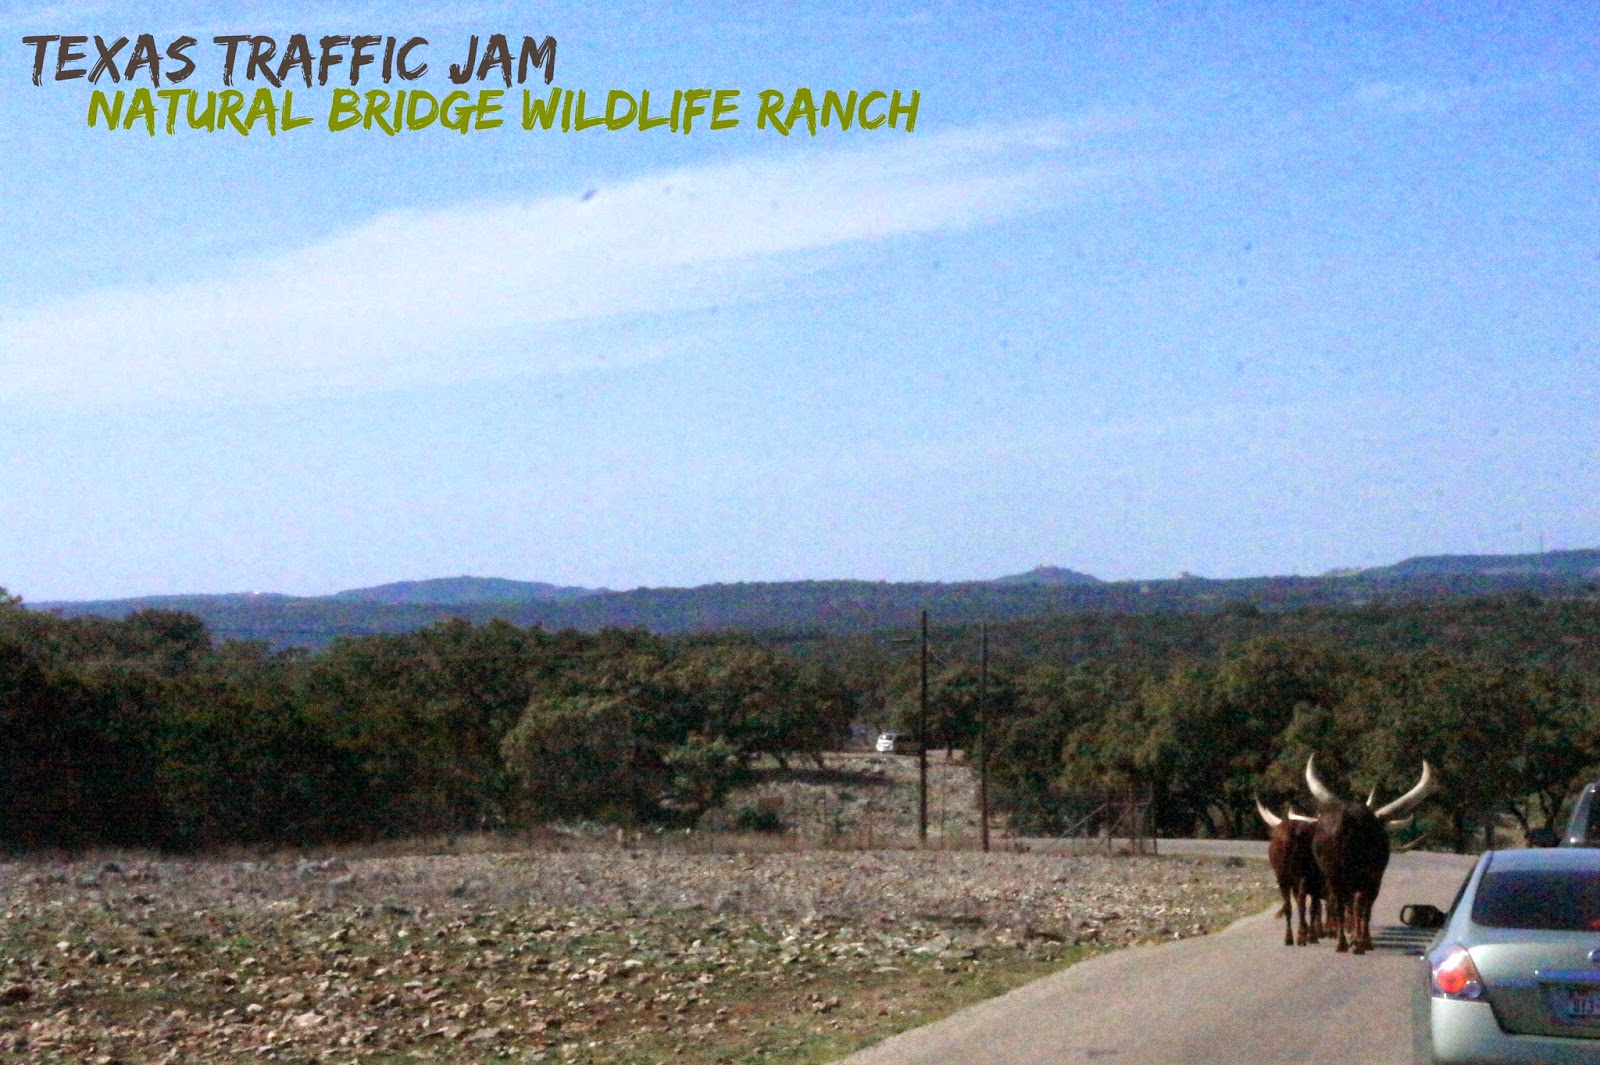 Texas Traffic Jam at the Natural Bridge Wildlife Ranch in San Antonio, Texas